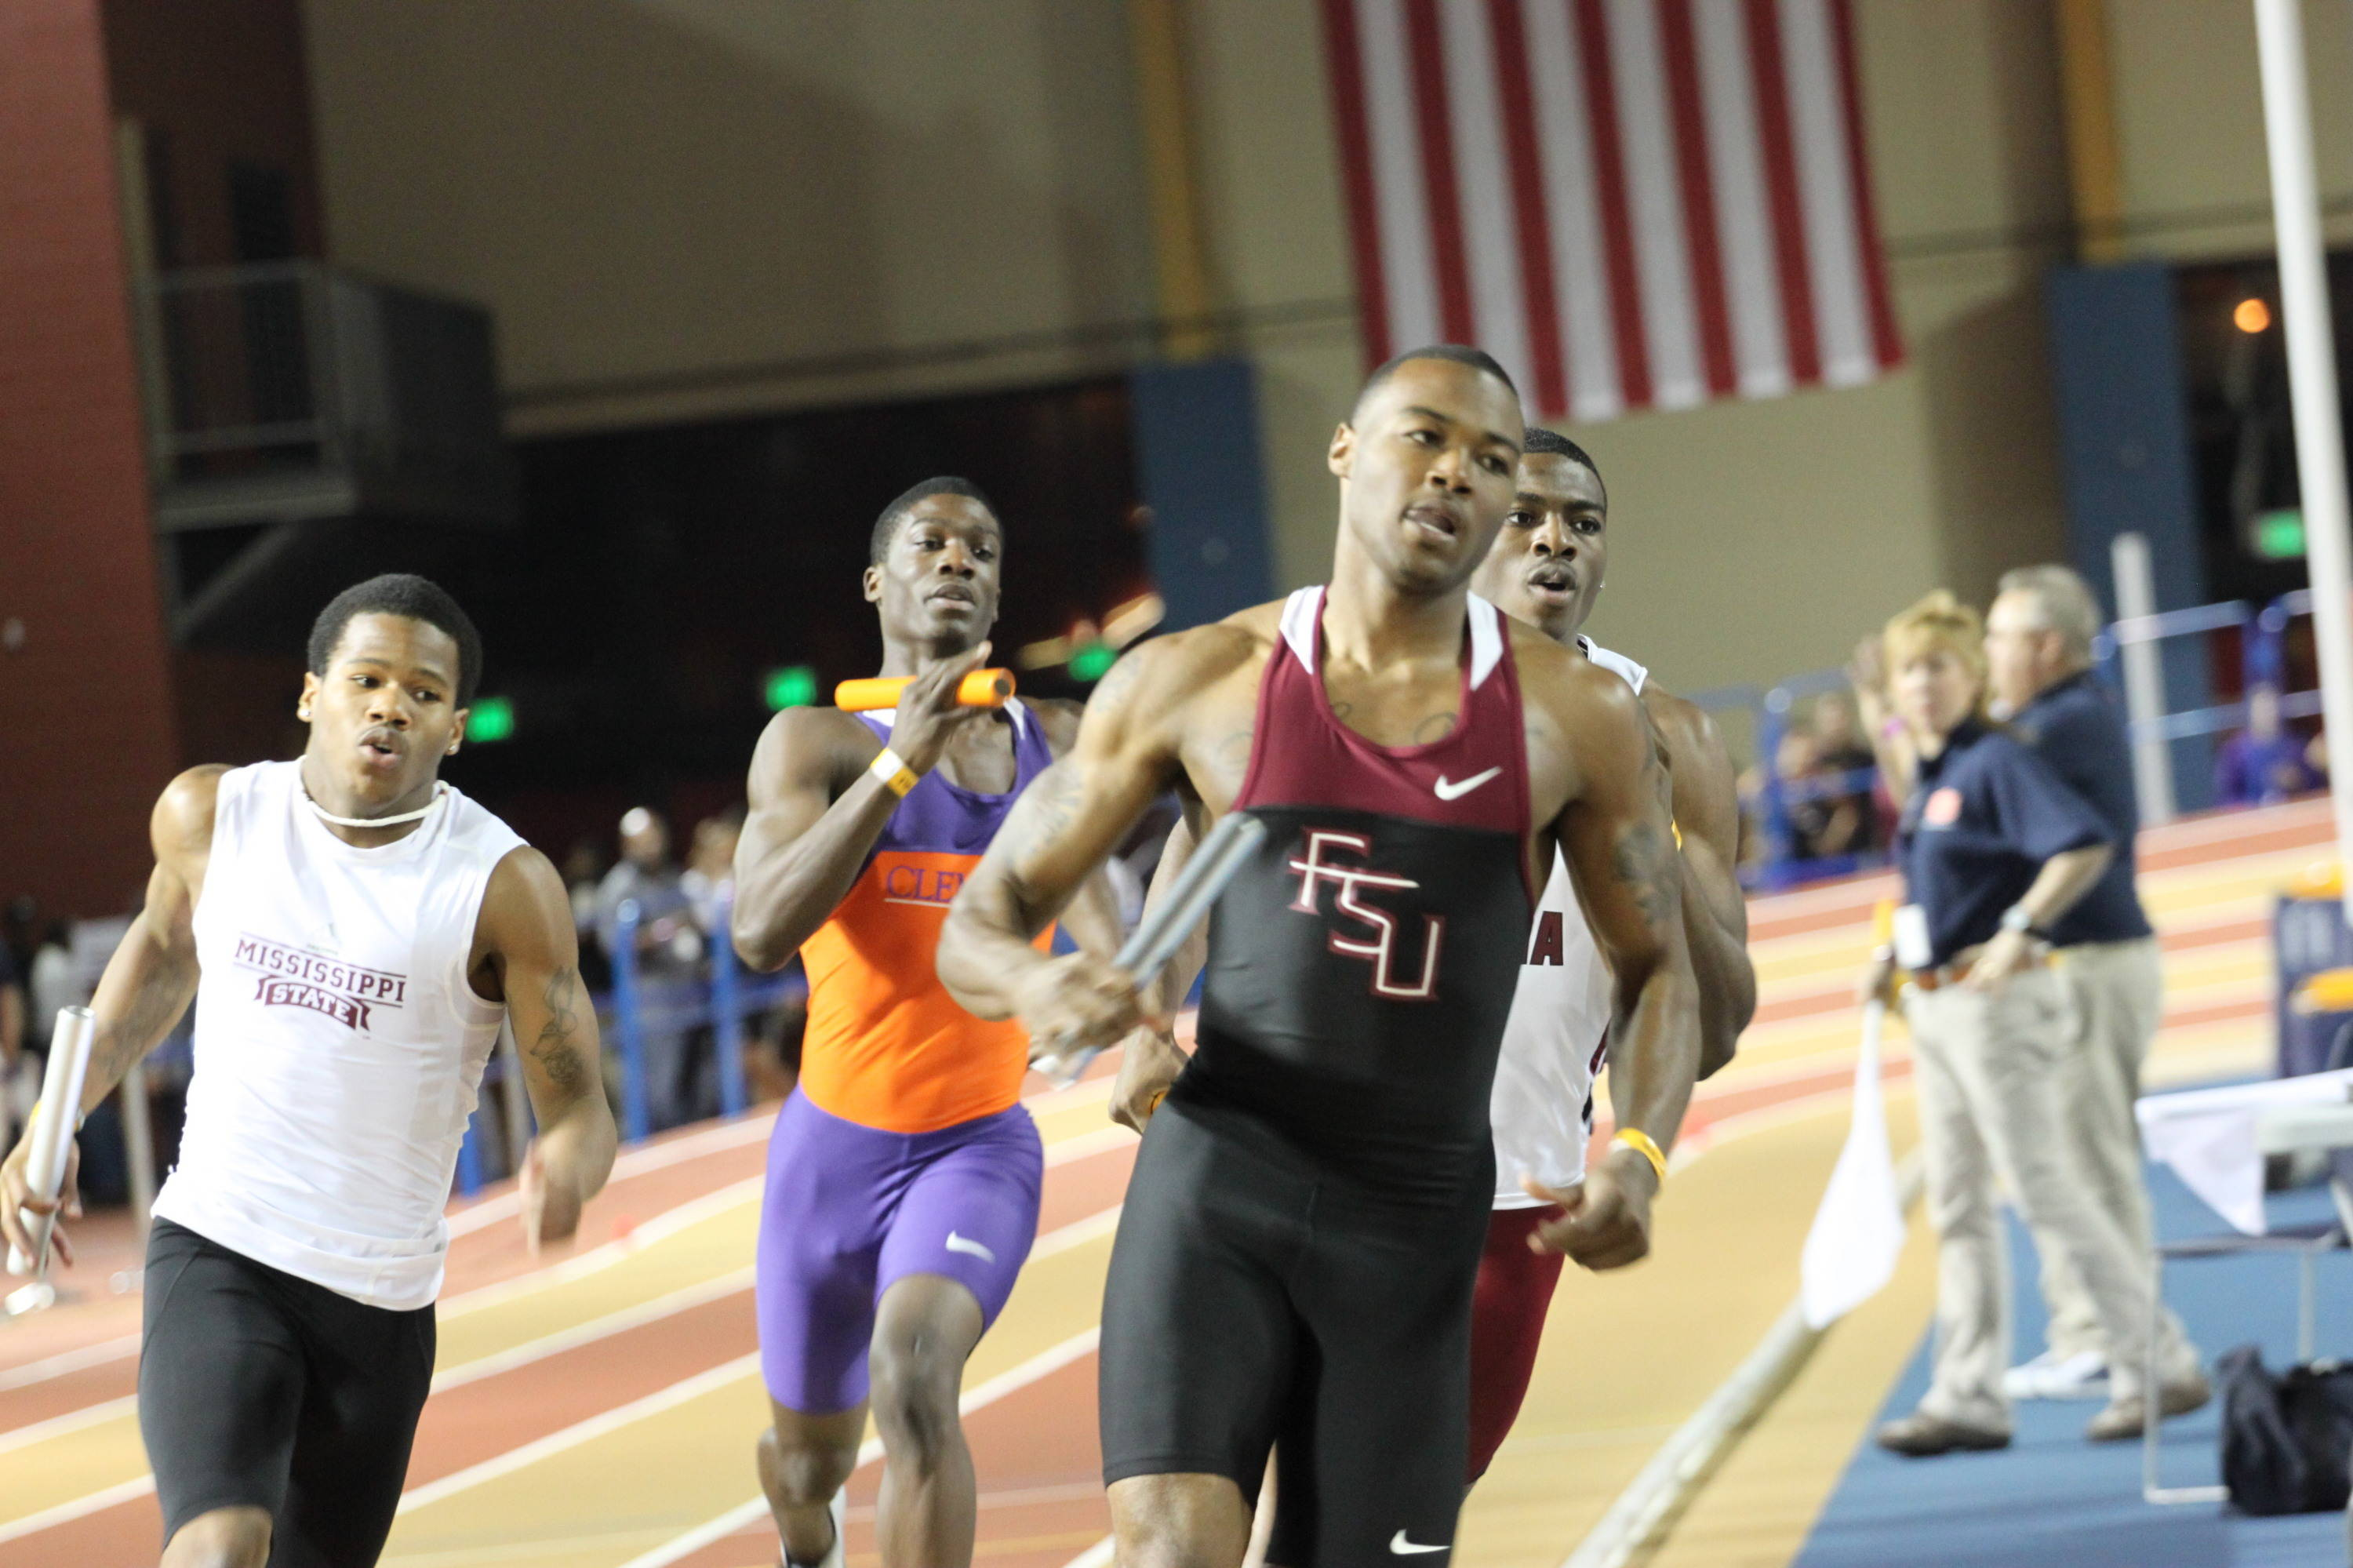 Transfer student Horatio Williams, a six-time All-American at LSU, made his FSU debut with a leadoff leg in the 4x400 relay Saturday.